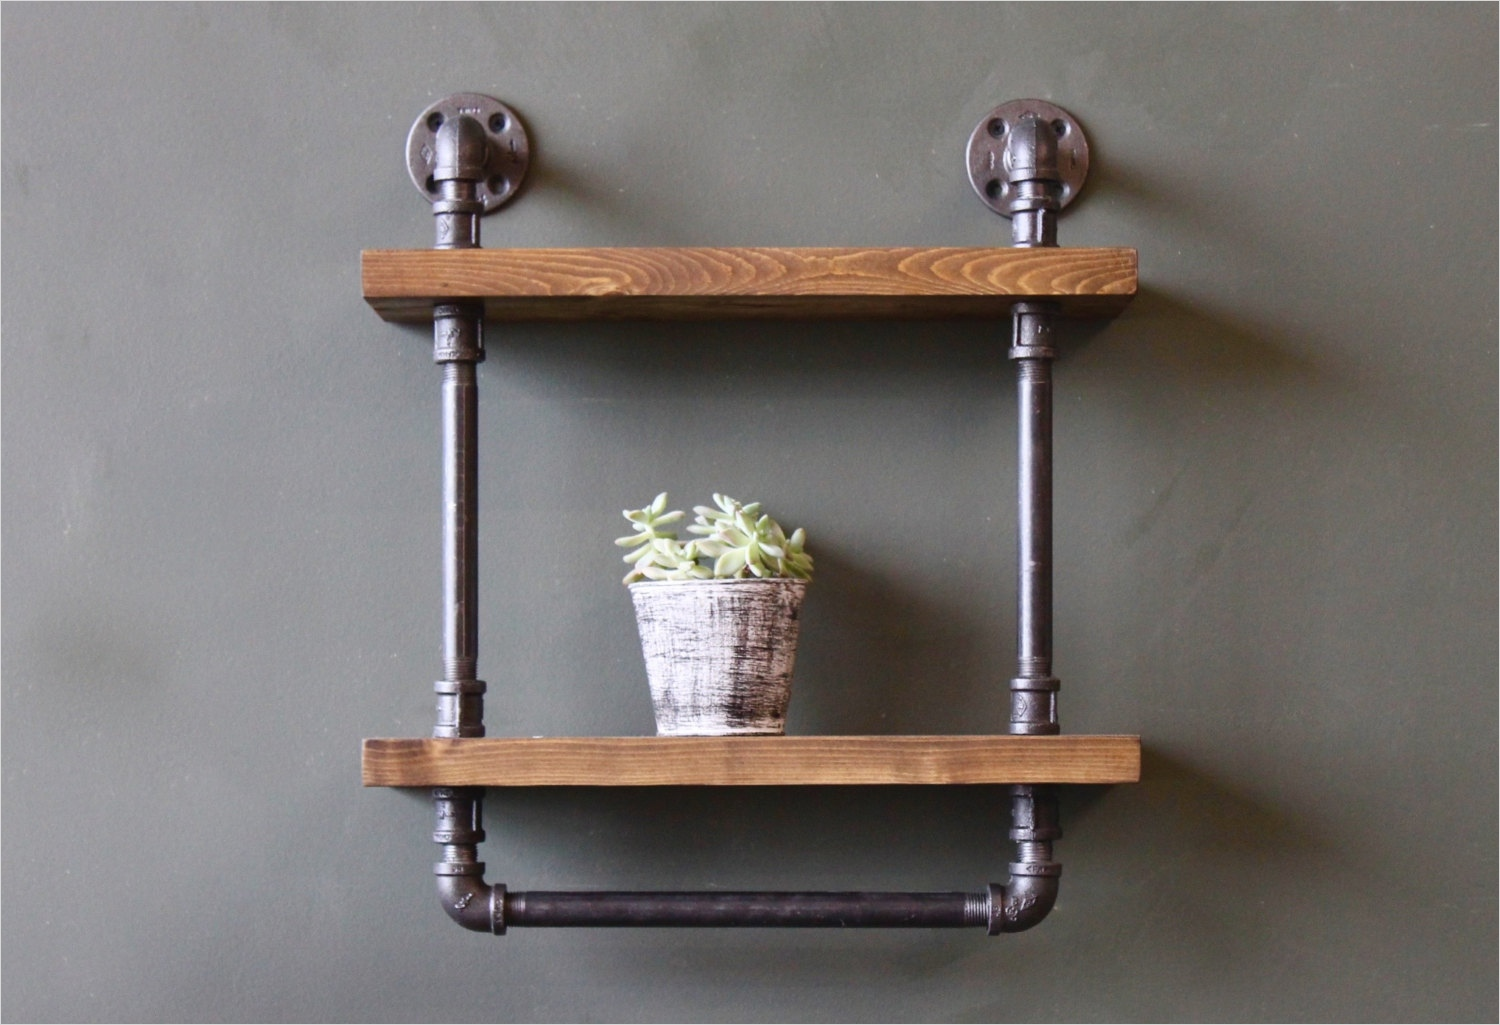 44 Creative Ideas Rustic Bathroom Walls Shelf 73 Rustic Shelf with towel Bar Bathroom Shelves Bathroom Wall 3